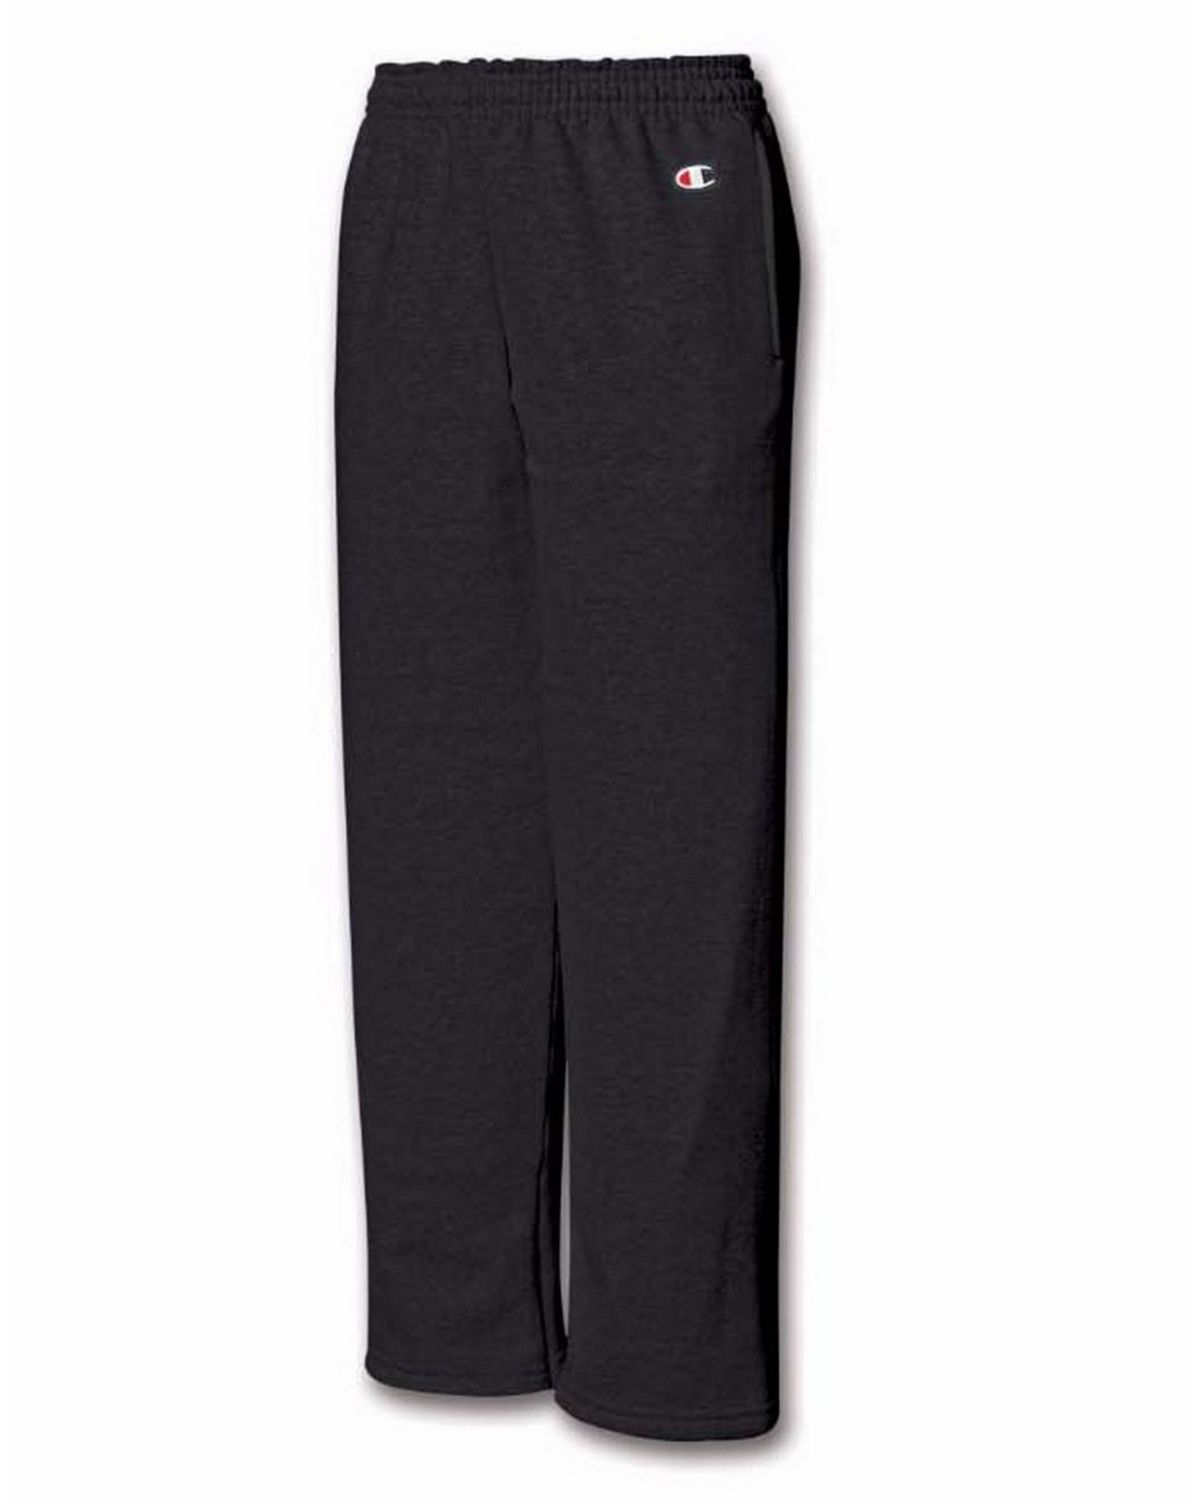 Champion Boys Eco 9 Oz 50/50 Open-Bottom Pants P890 -Black Xl P890